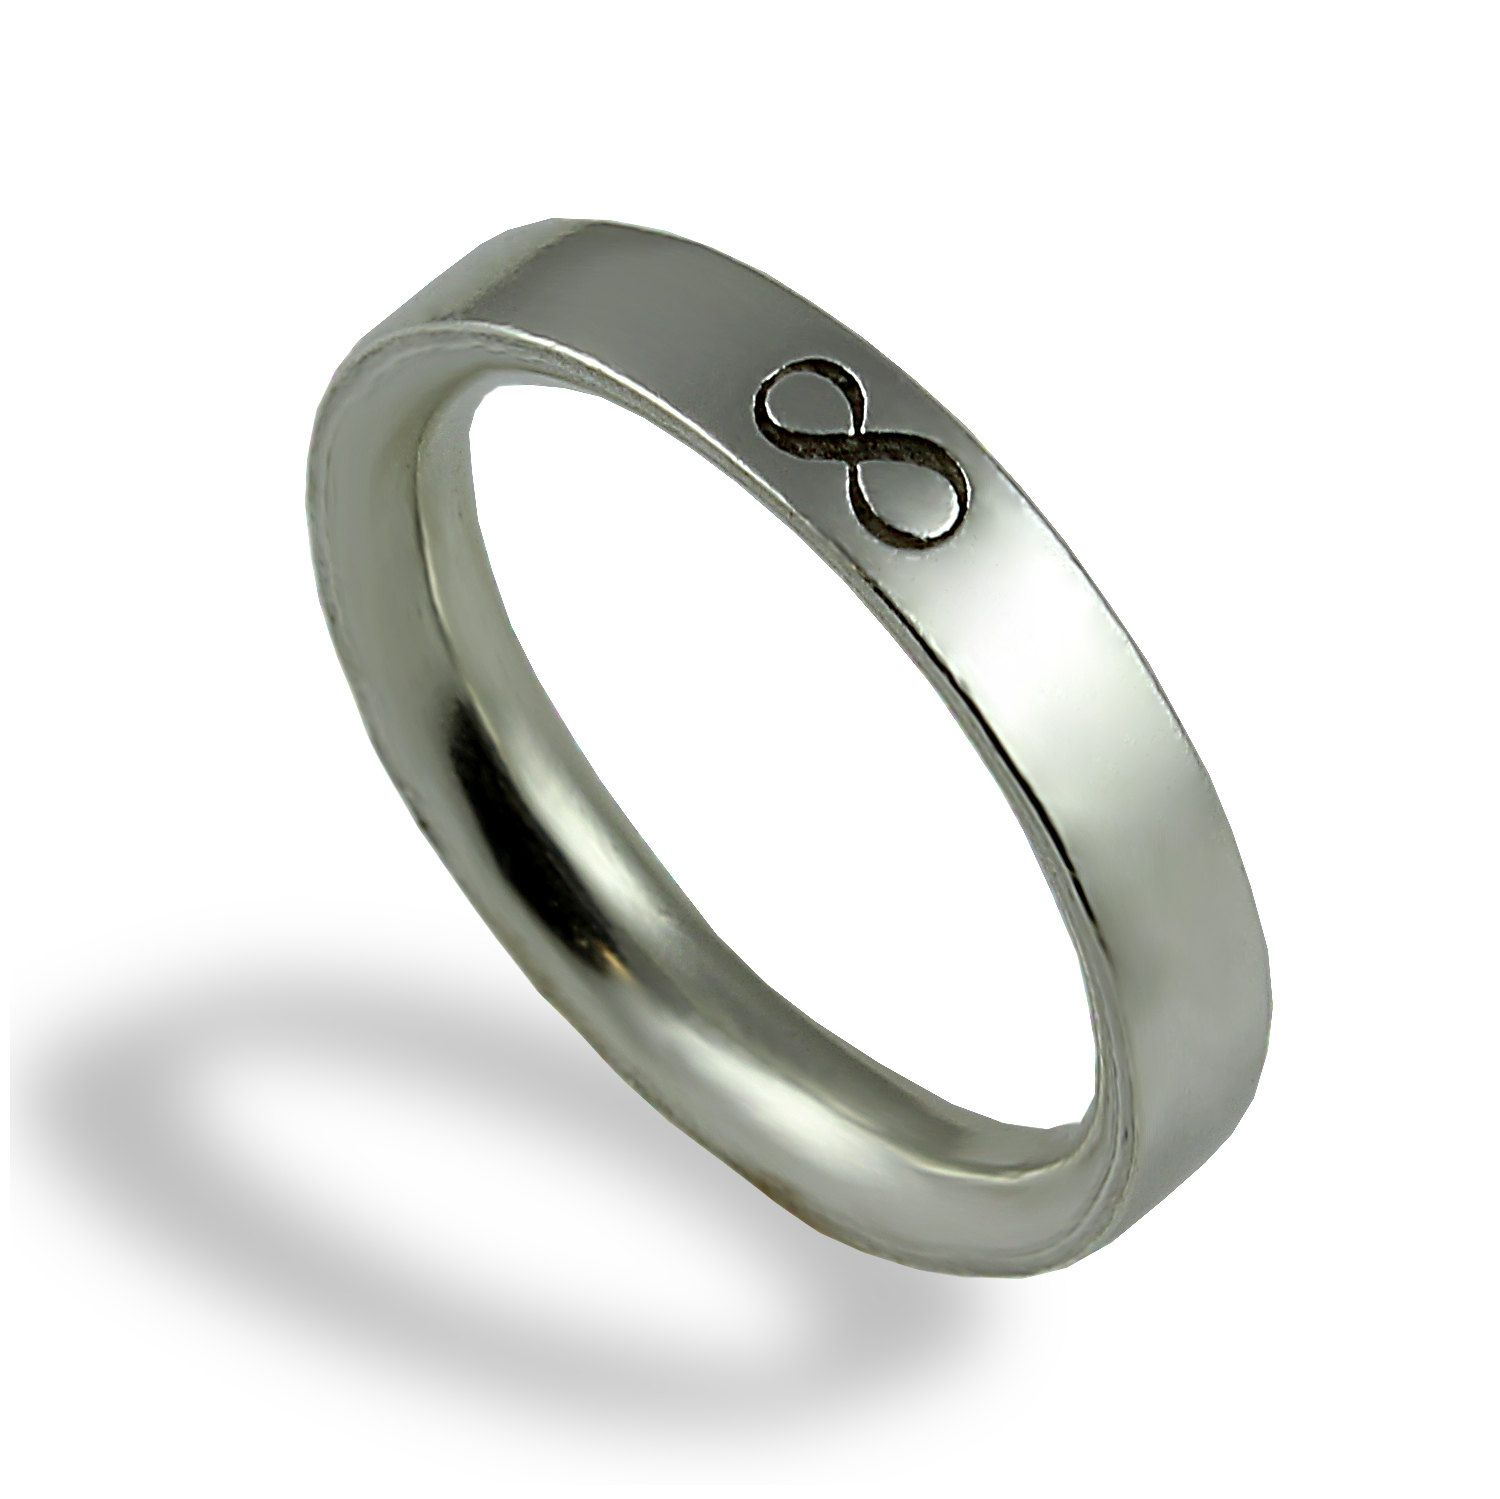 Infinity Wedding Band Unique Wedding Ring For Men White Gold For Him Commitment Ring Mens Wedding Rings Wedding Rings Unique Infinity Wedding Band